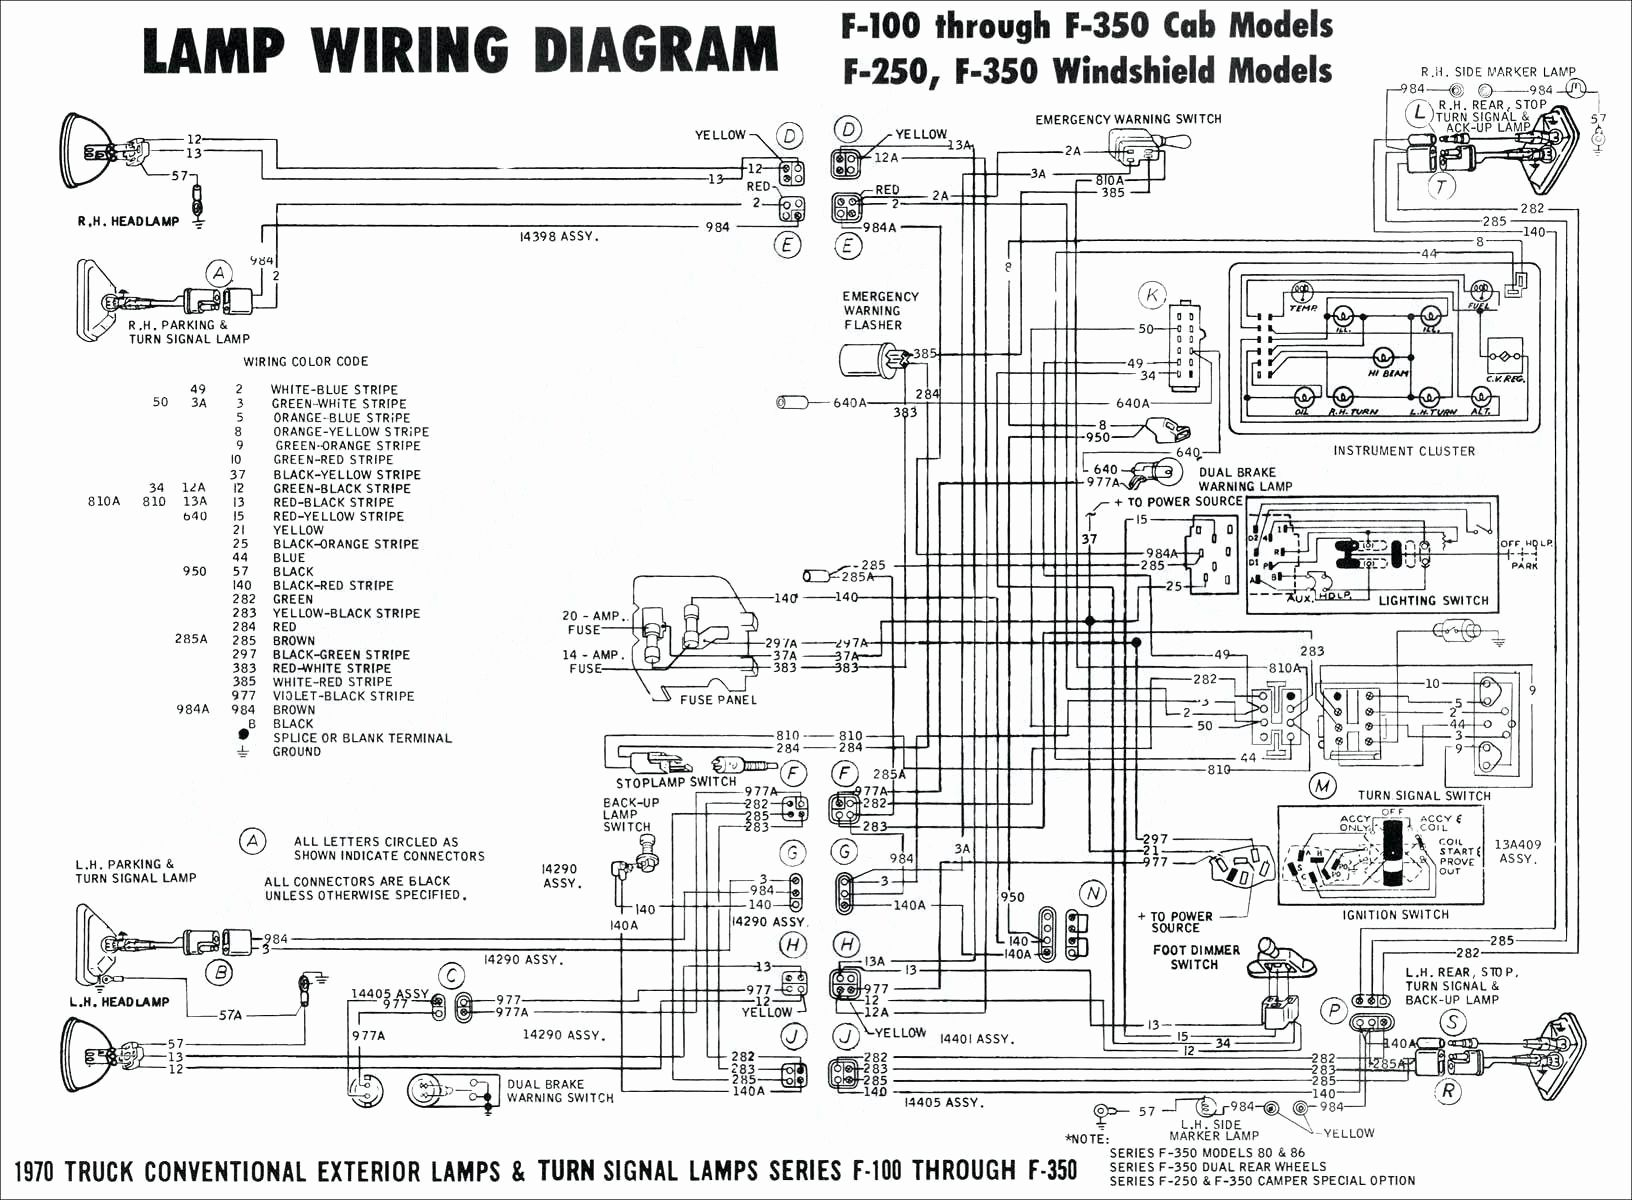 Typical Trailer Wiring Diagram Cm Parts New Zealand | Wiring Diagram - Trailer Wiring Diagram New Zealand